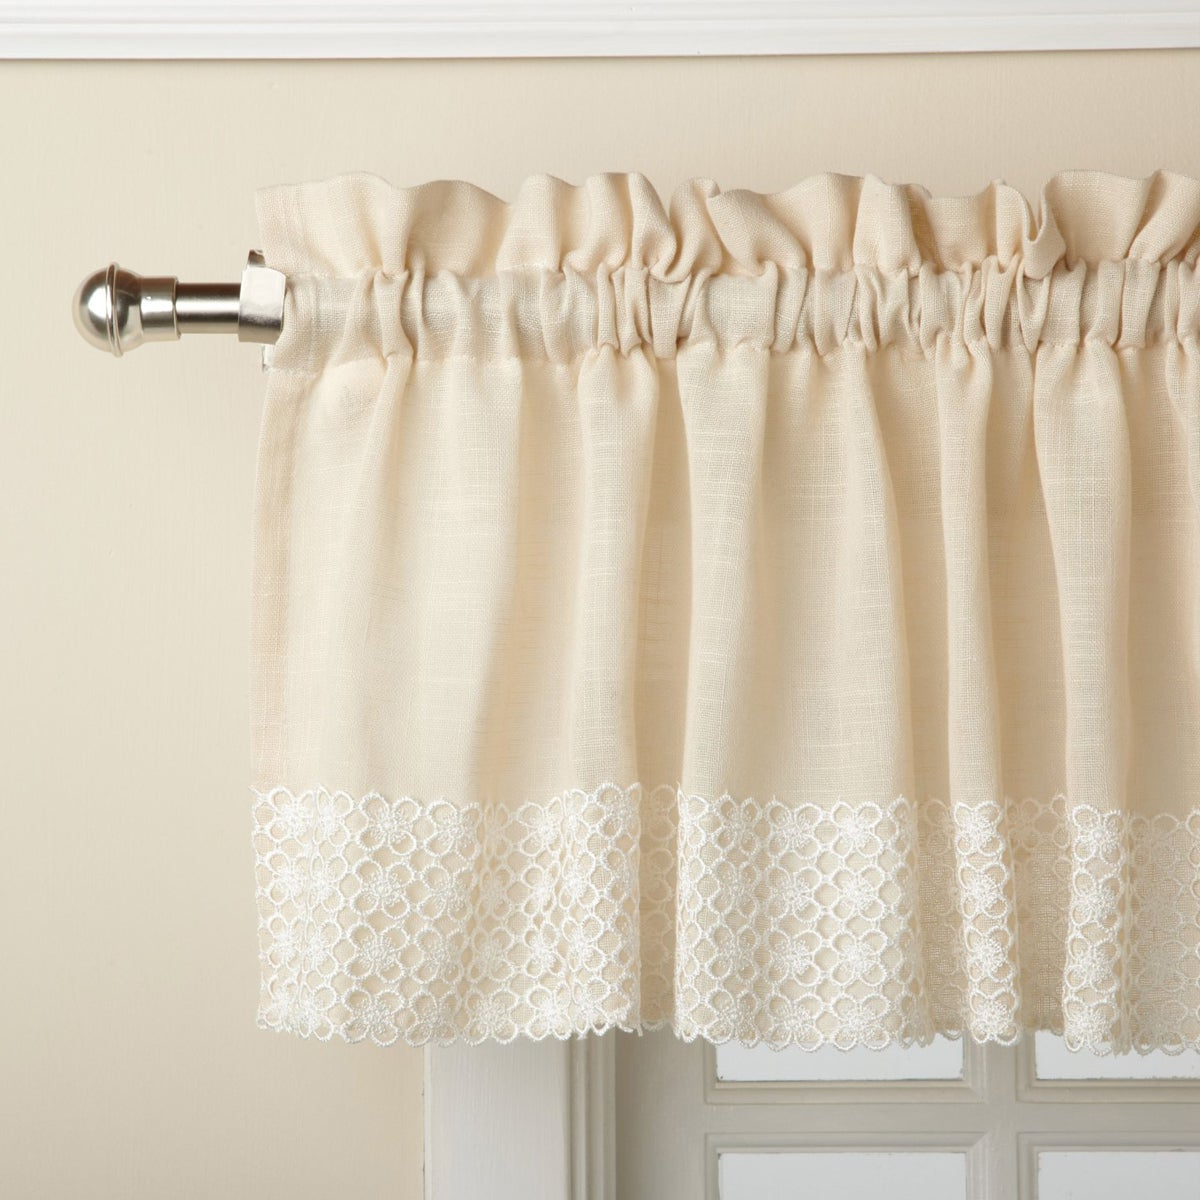 Popular French Vanilla Country Style Curtain Parts With White Daisy Lace Accent Tier, Swag And Valance Options Pertaining To Country Style Curtain Parts With White Daisy Lace Accent (View 8 of 20)